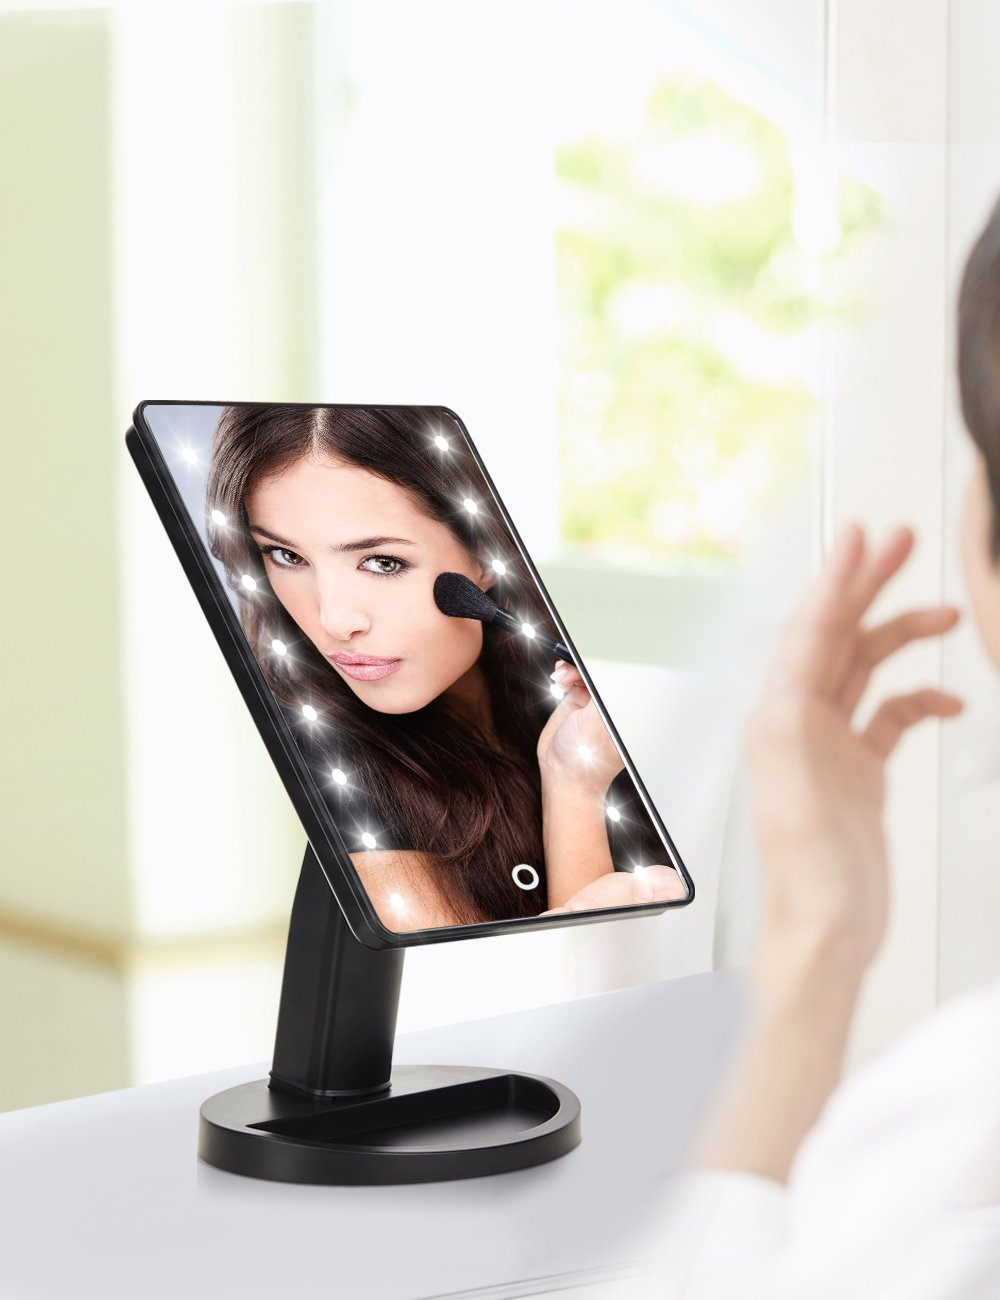 Lighted-Vanity-Makeup-Mirror-with-16-Led-Lights-180-Degree-Free-Rotation-Touch-Screen-Adjusted-Brightness-Battery-USB-Dual-Supply-Bathroom-Beauty-Mirror